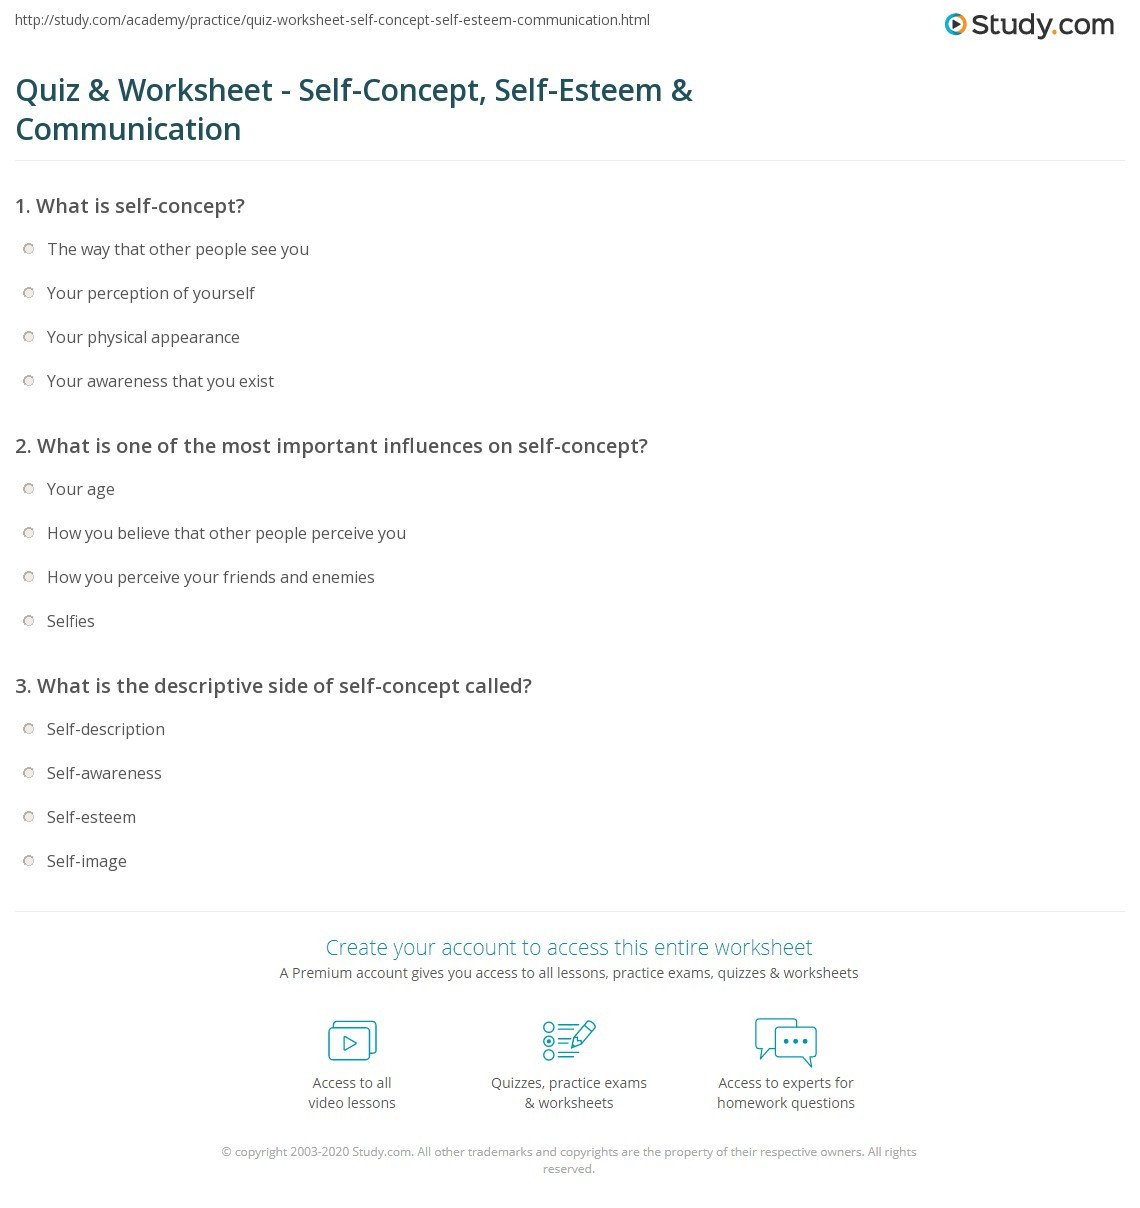 quiz worksheet self concept self esteem munication